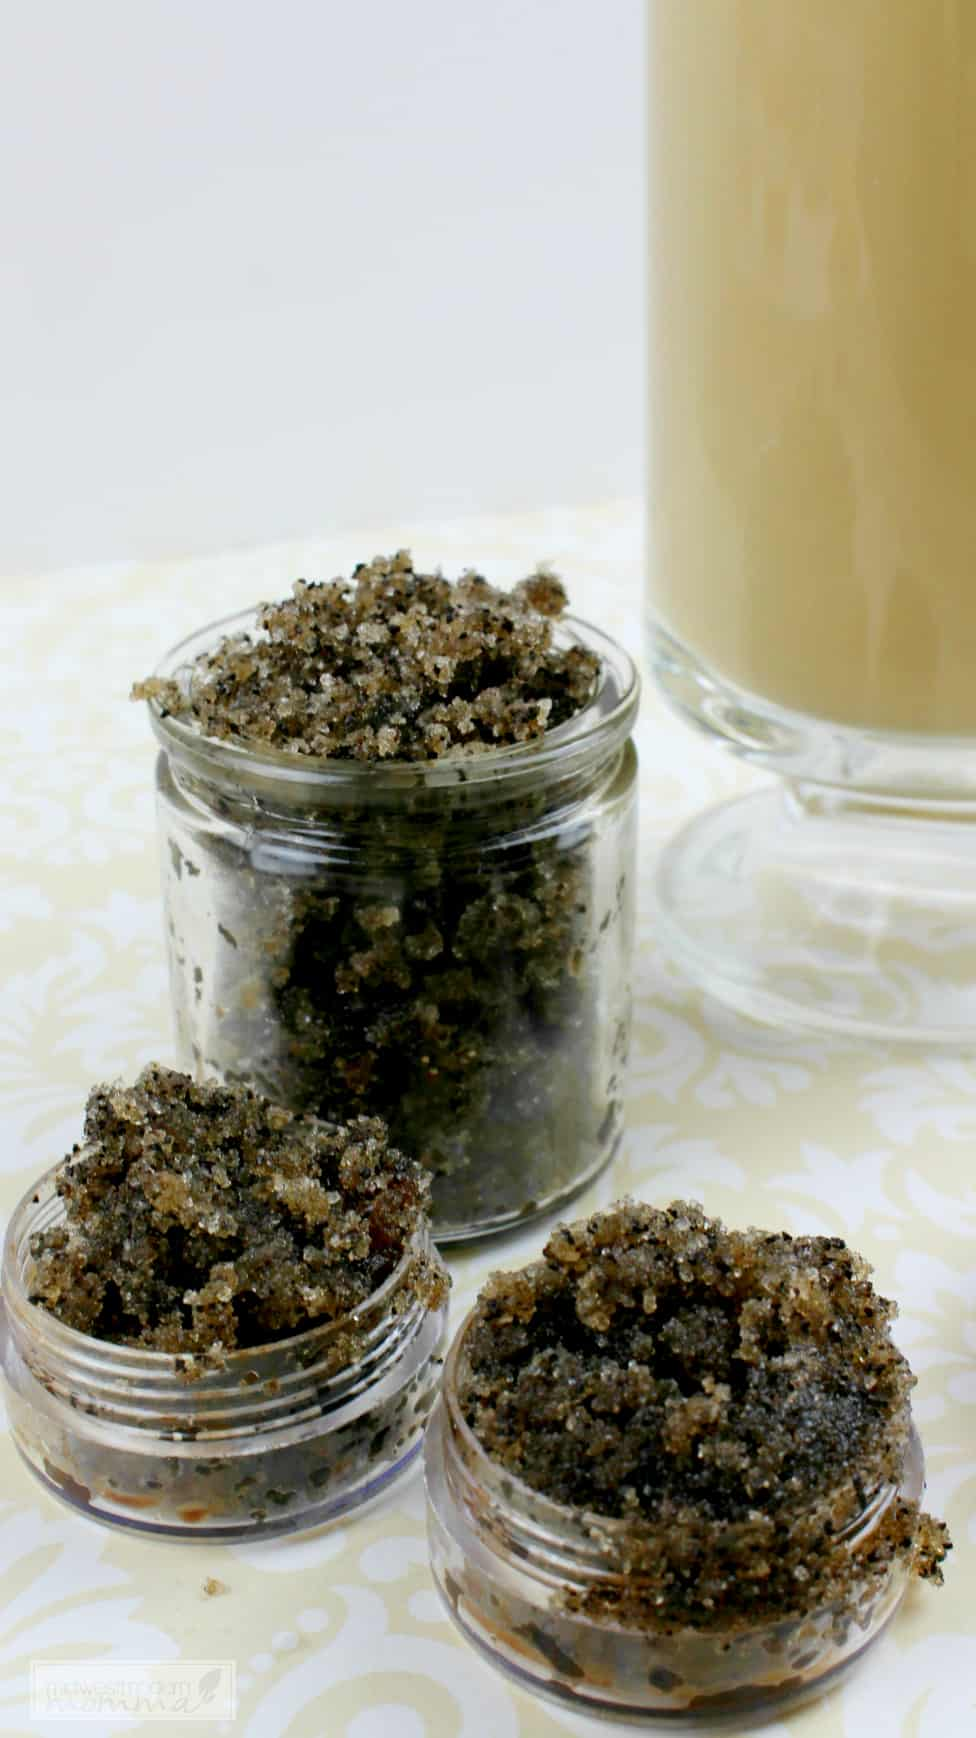 Make our Sugar Lip Scrub that has an amazing Vanilla Latte scent and flavor as a great chemical free homemade beauty product! This recipe is easy and affordable making it perfect for a teacher gift!